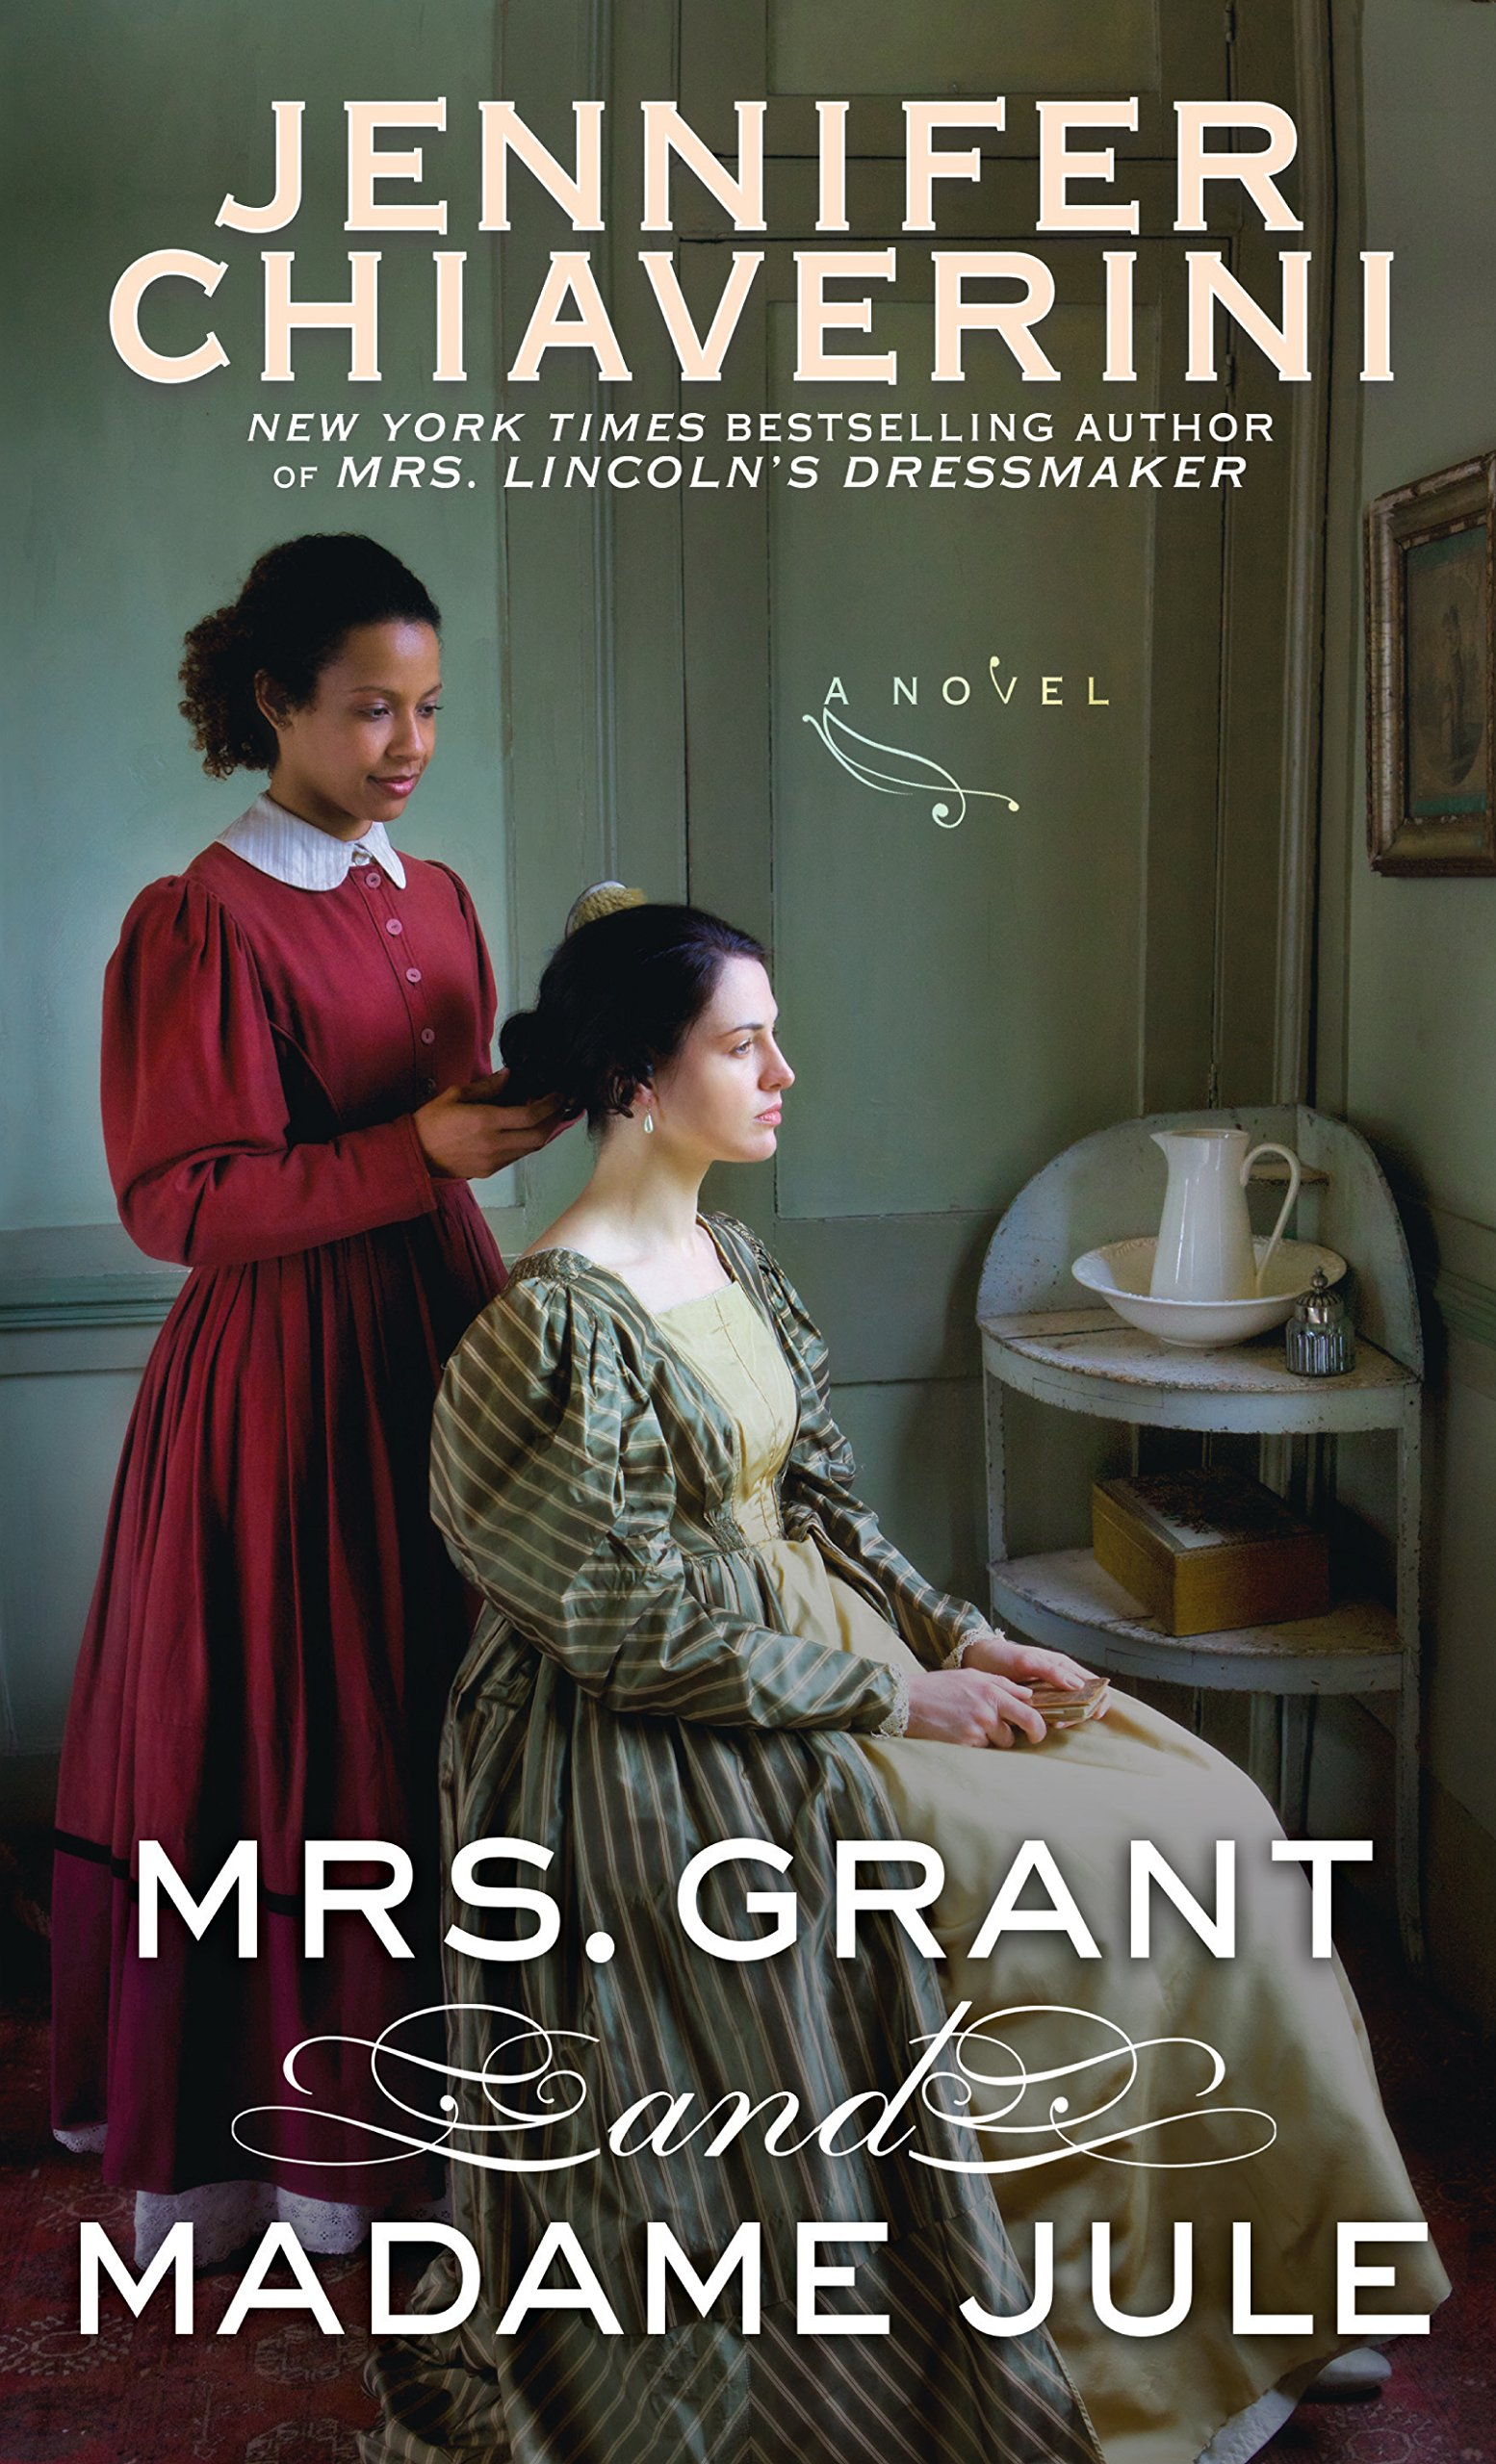 Read Online Mrs. Grant And Madame Jule (Thorndike Press large print core) pdf epub